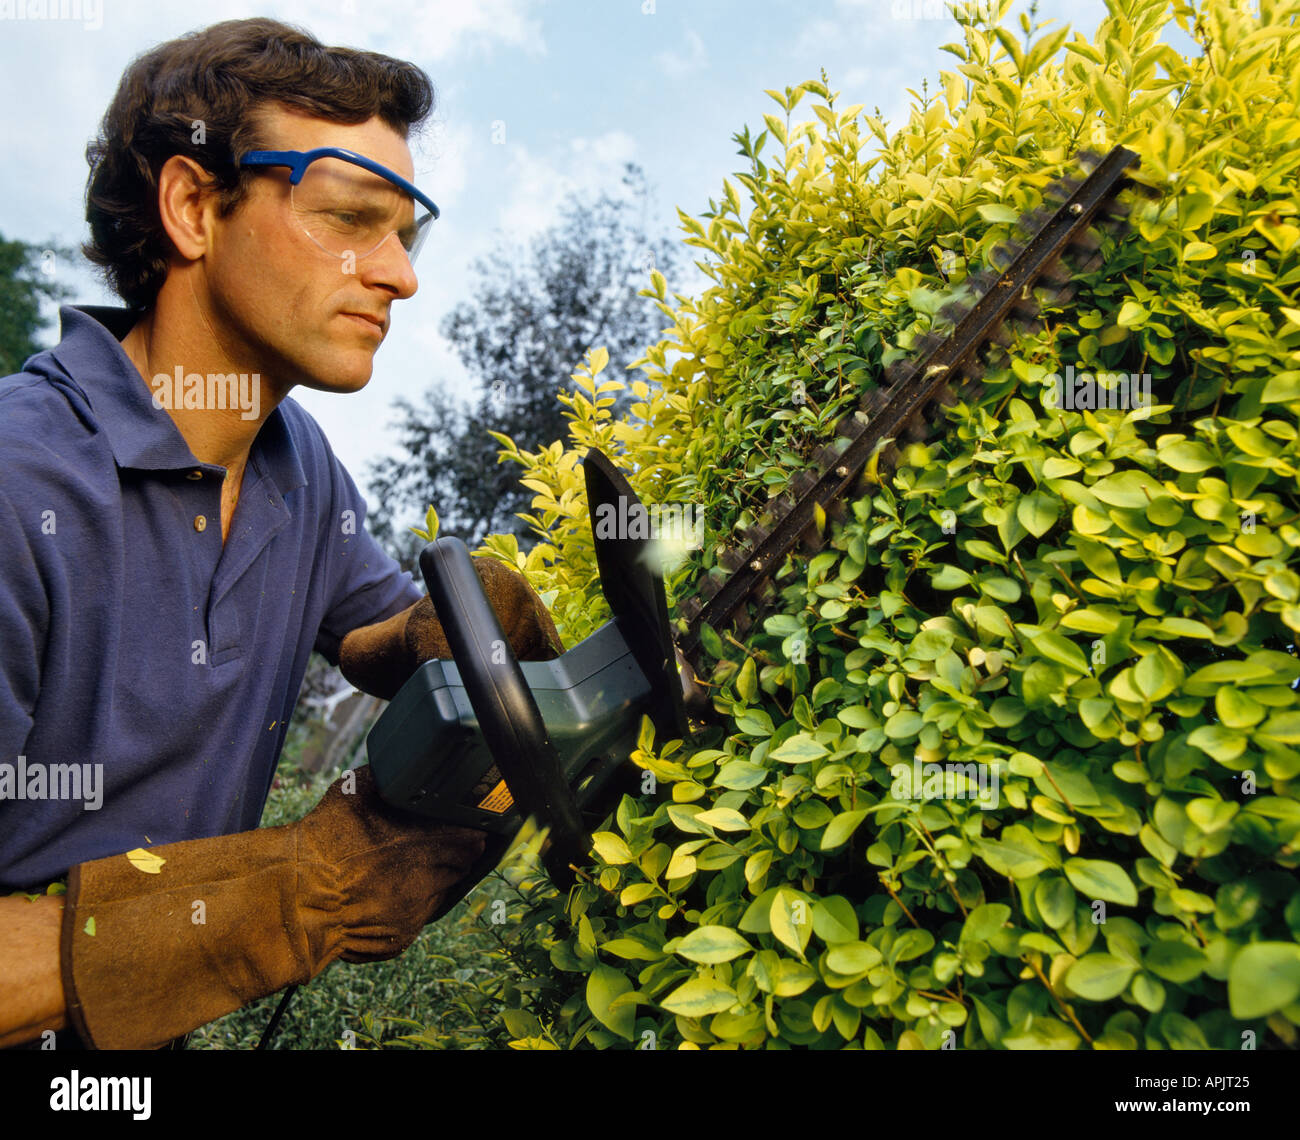 MAN TRIMMING PRIVET ( LIGUSTRUM VICARYI )HEDGE WITH ELECTRIC TRIMMER WEARING SAFETY GLASSES - Stock Image